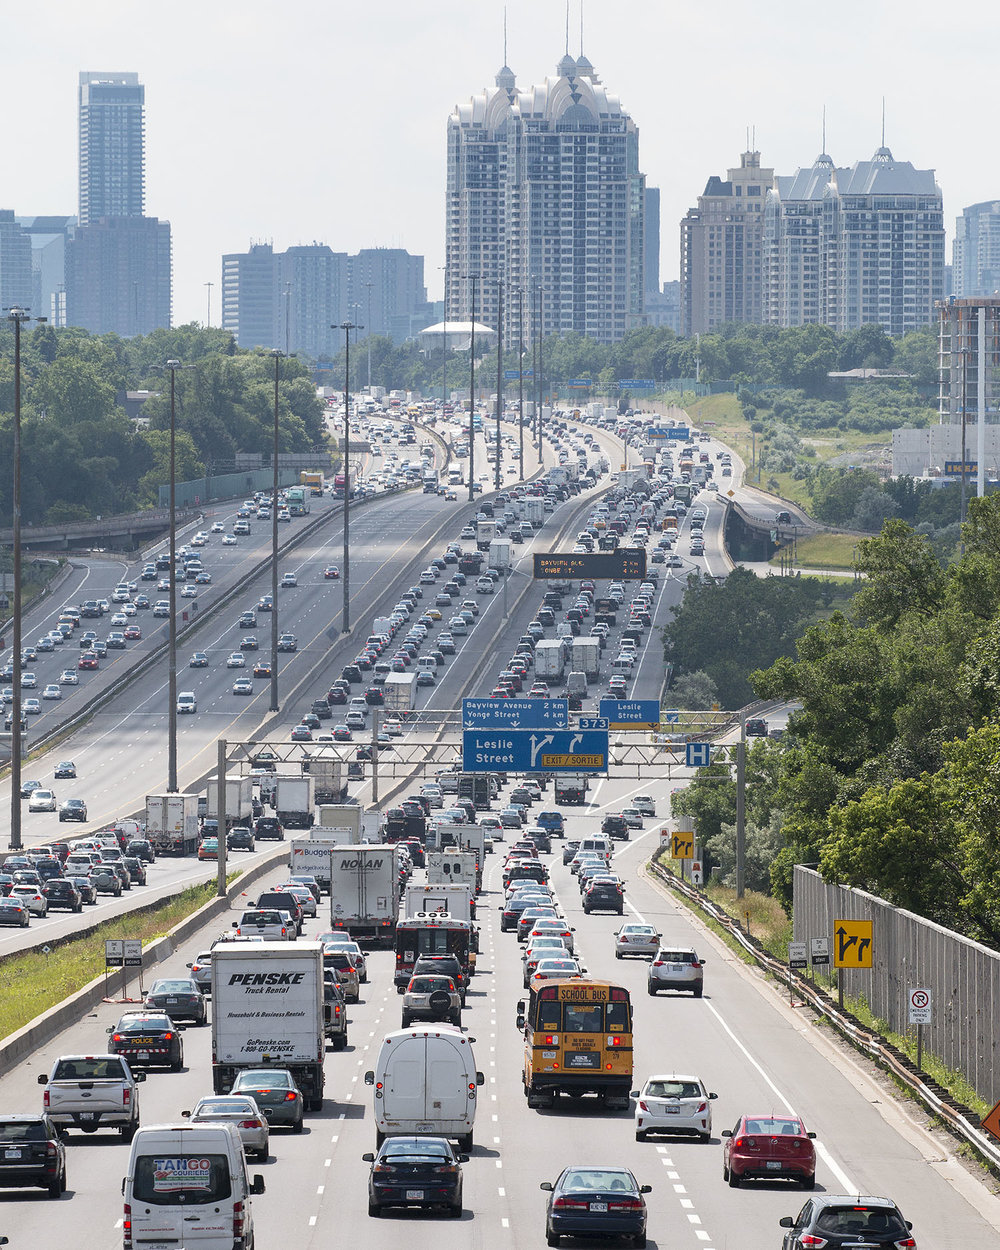 Traffic on Highway 401 going Eastbound during a typical weekday rush hour period in the heat of the summer. Image by Dennis Marciniak of denMAR Media.